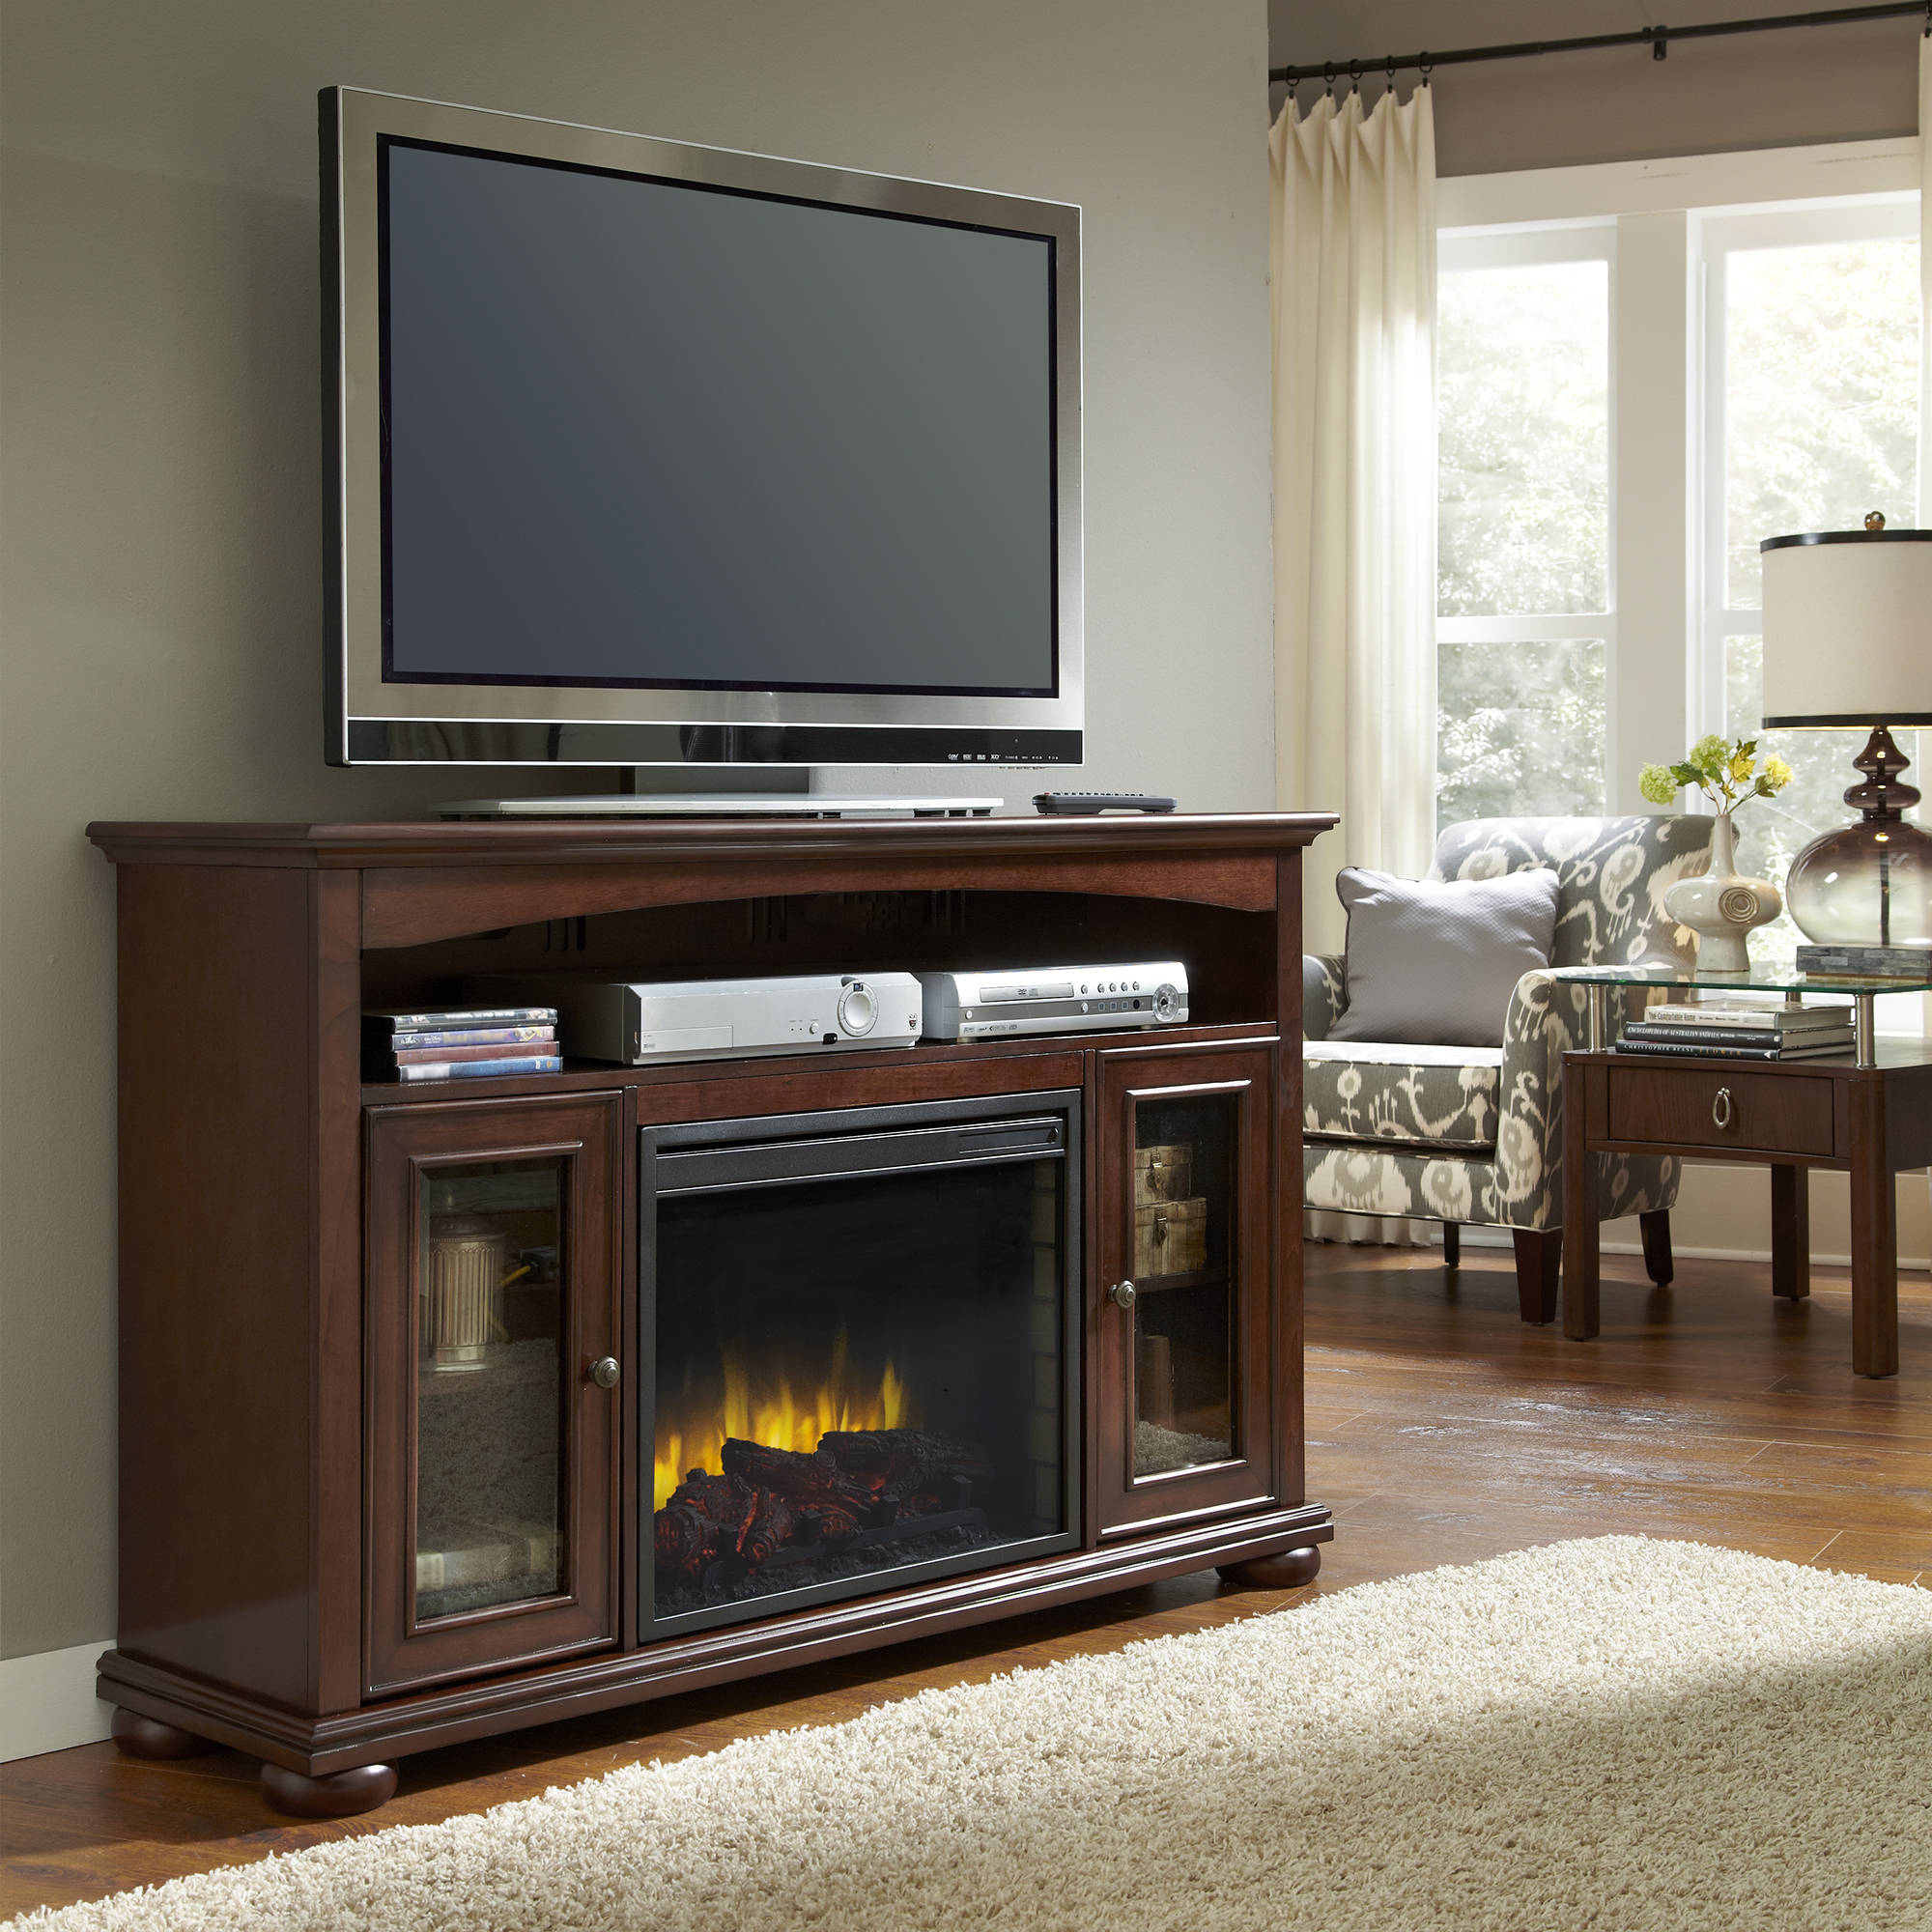 pleasant hearth 238 11 68 everest media fireplace walmart com